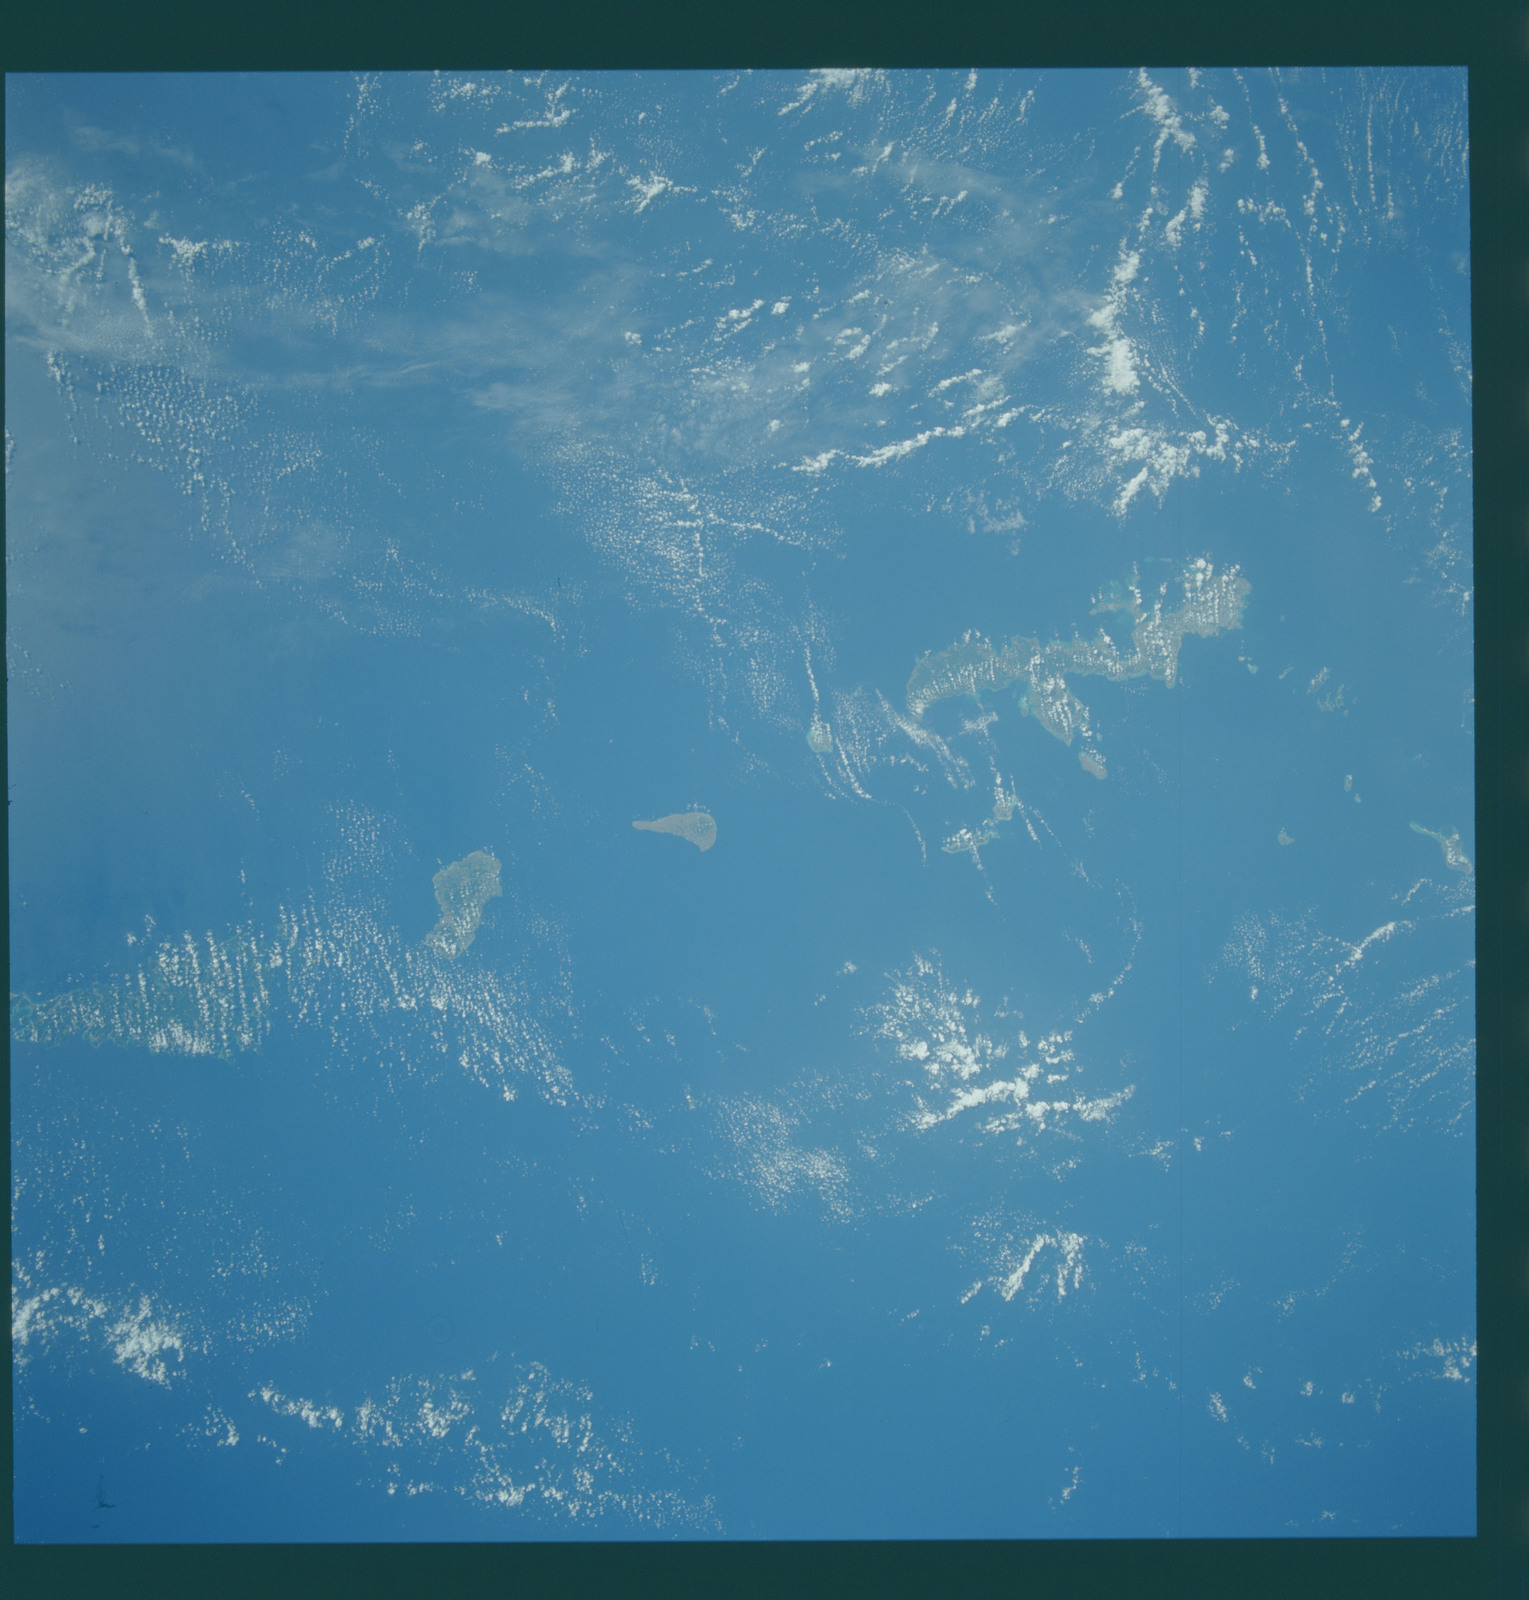 S43-601-062 - STS-043 - STS-43 earth observations